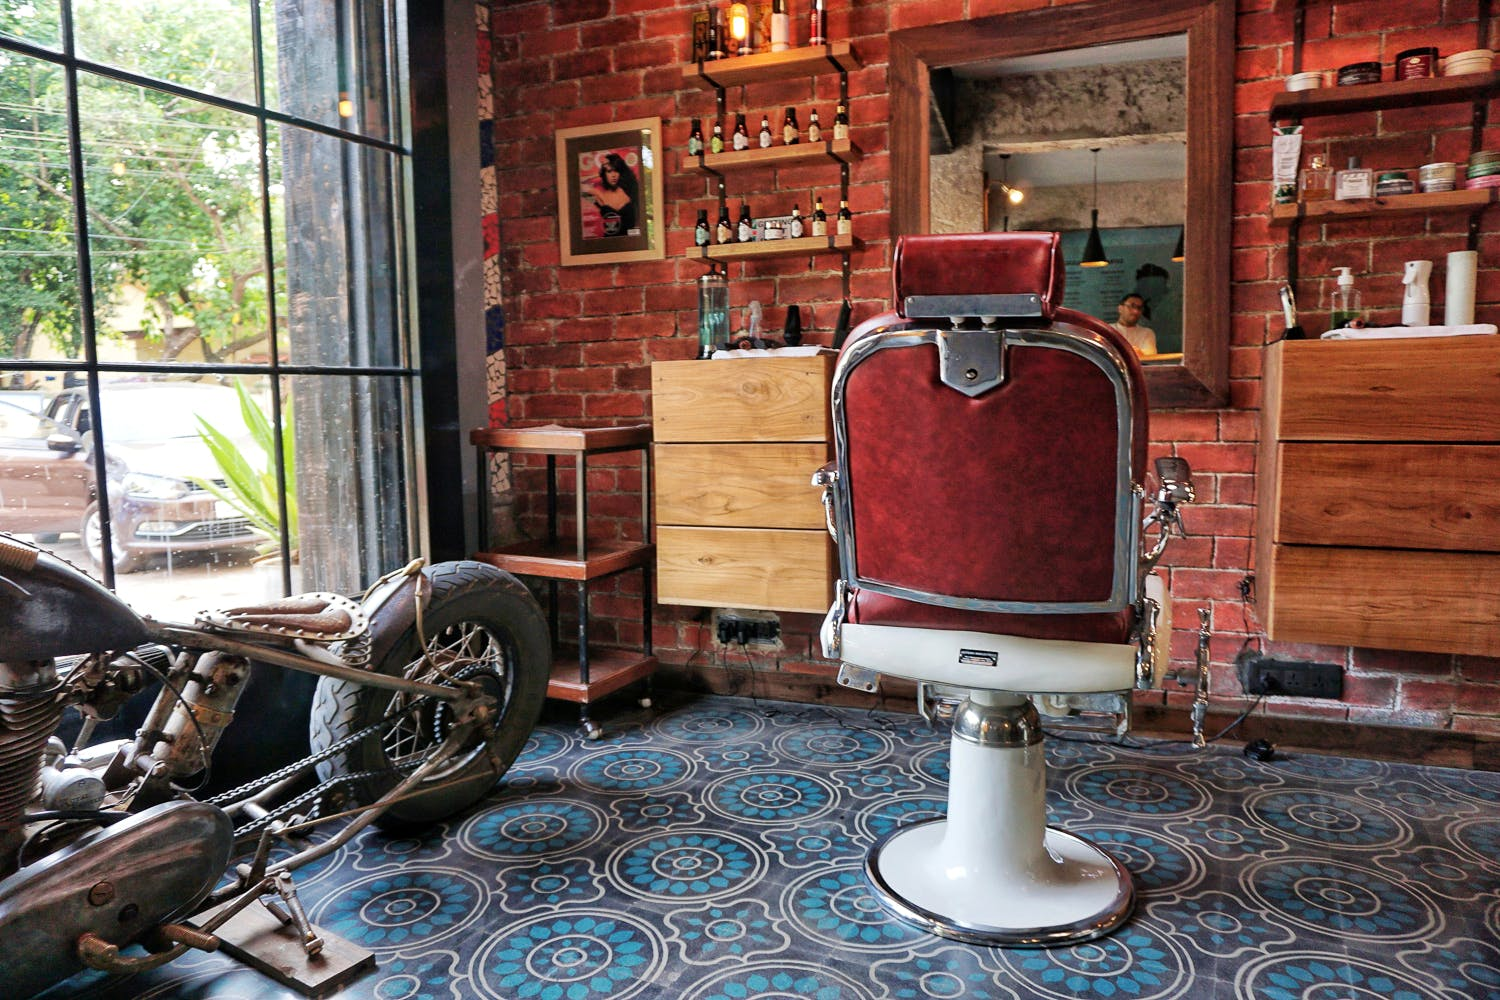 Barber chair,House,Room,Brickwork,Chair,Wood,Furniture,Classic,Architecture,Window